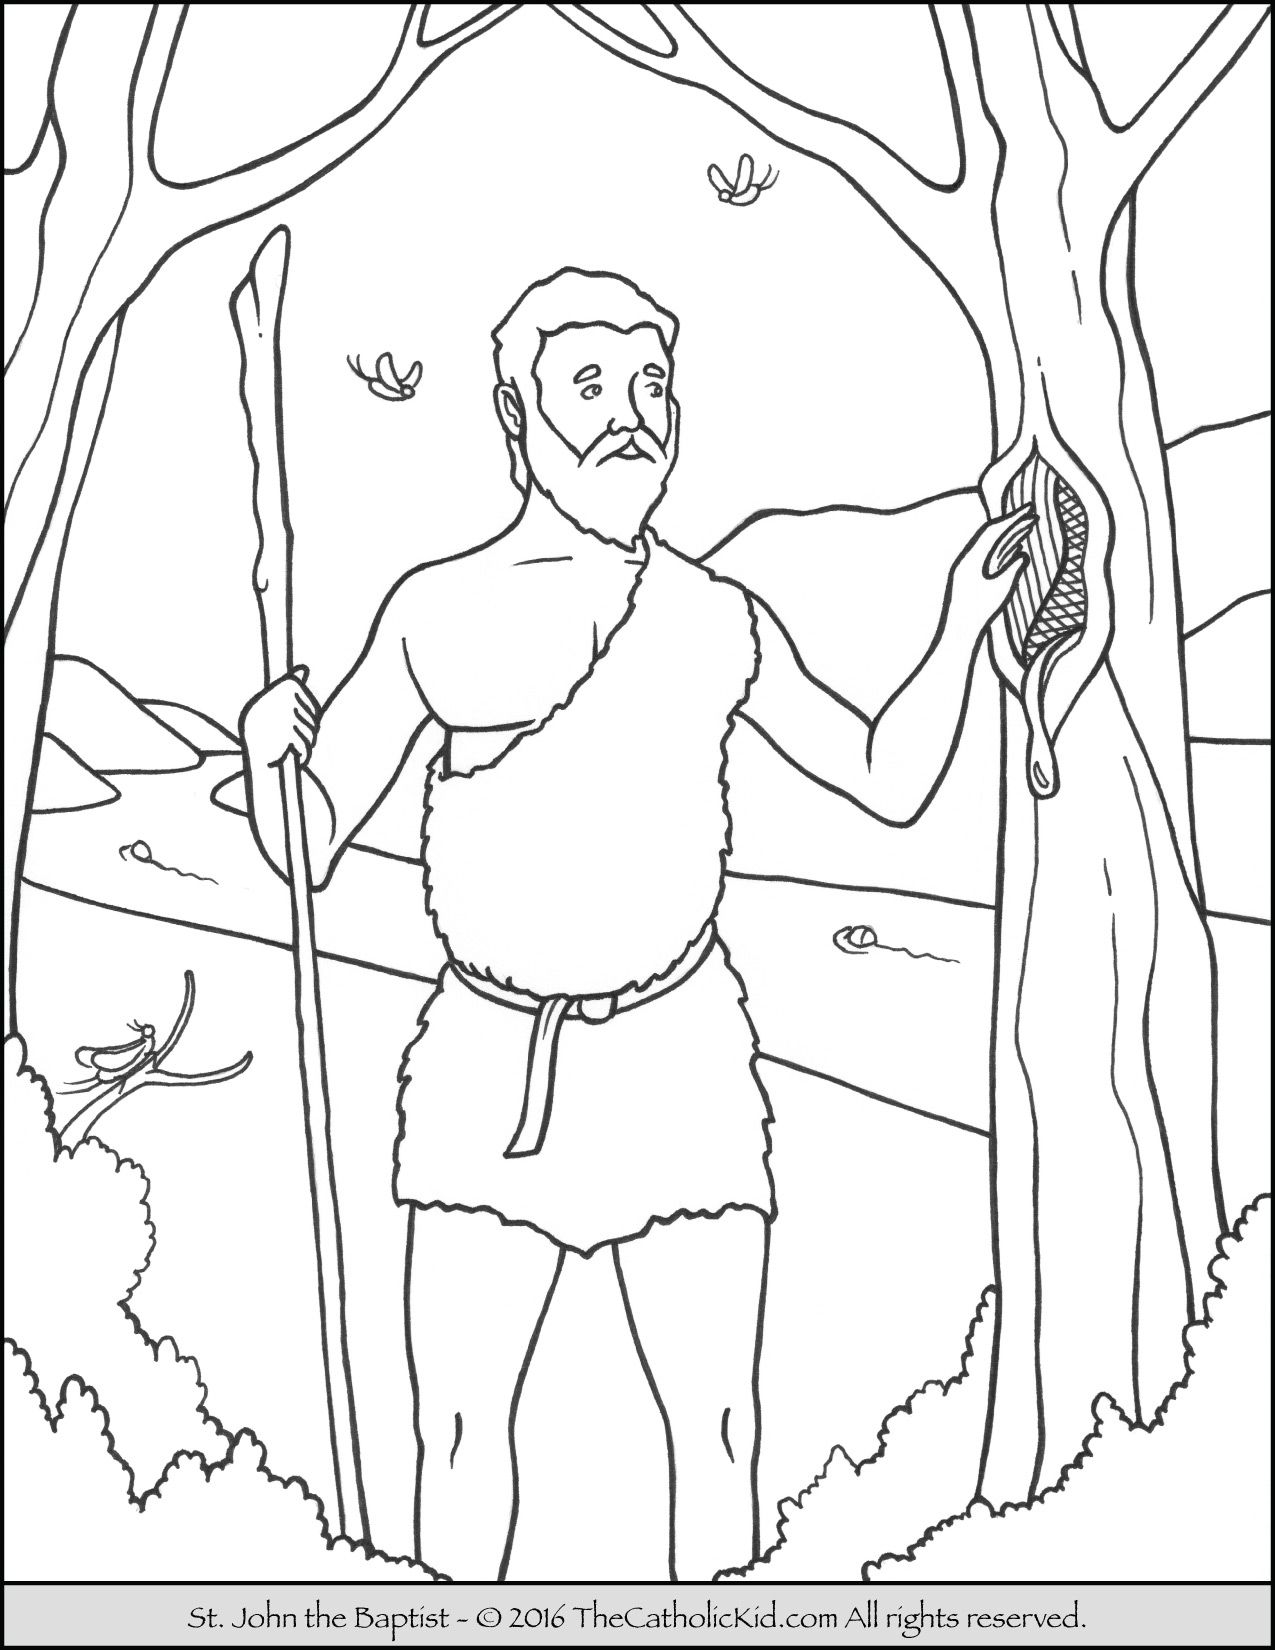 Saint John The Baptist Coloring Pages The Catholic Kid John The Baptist Saint Coloring Coloring Pages